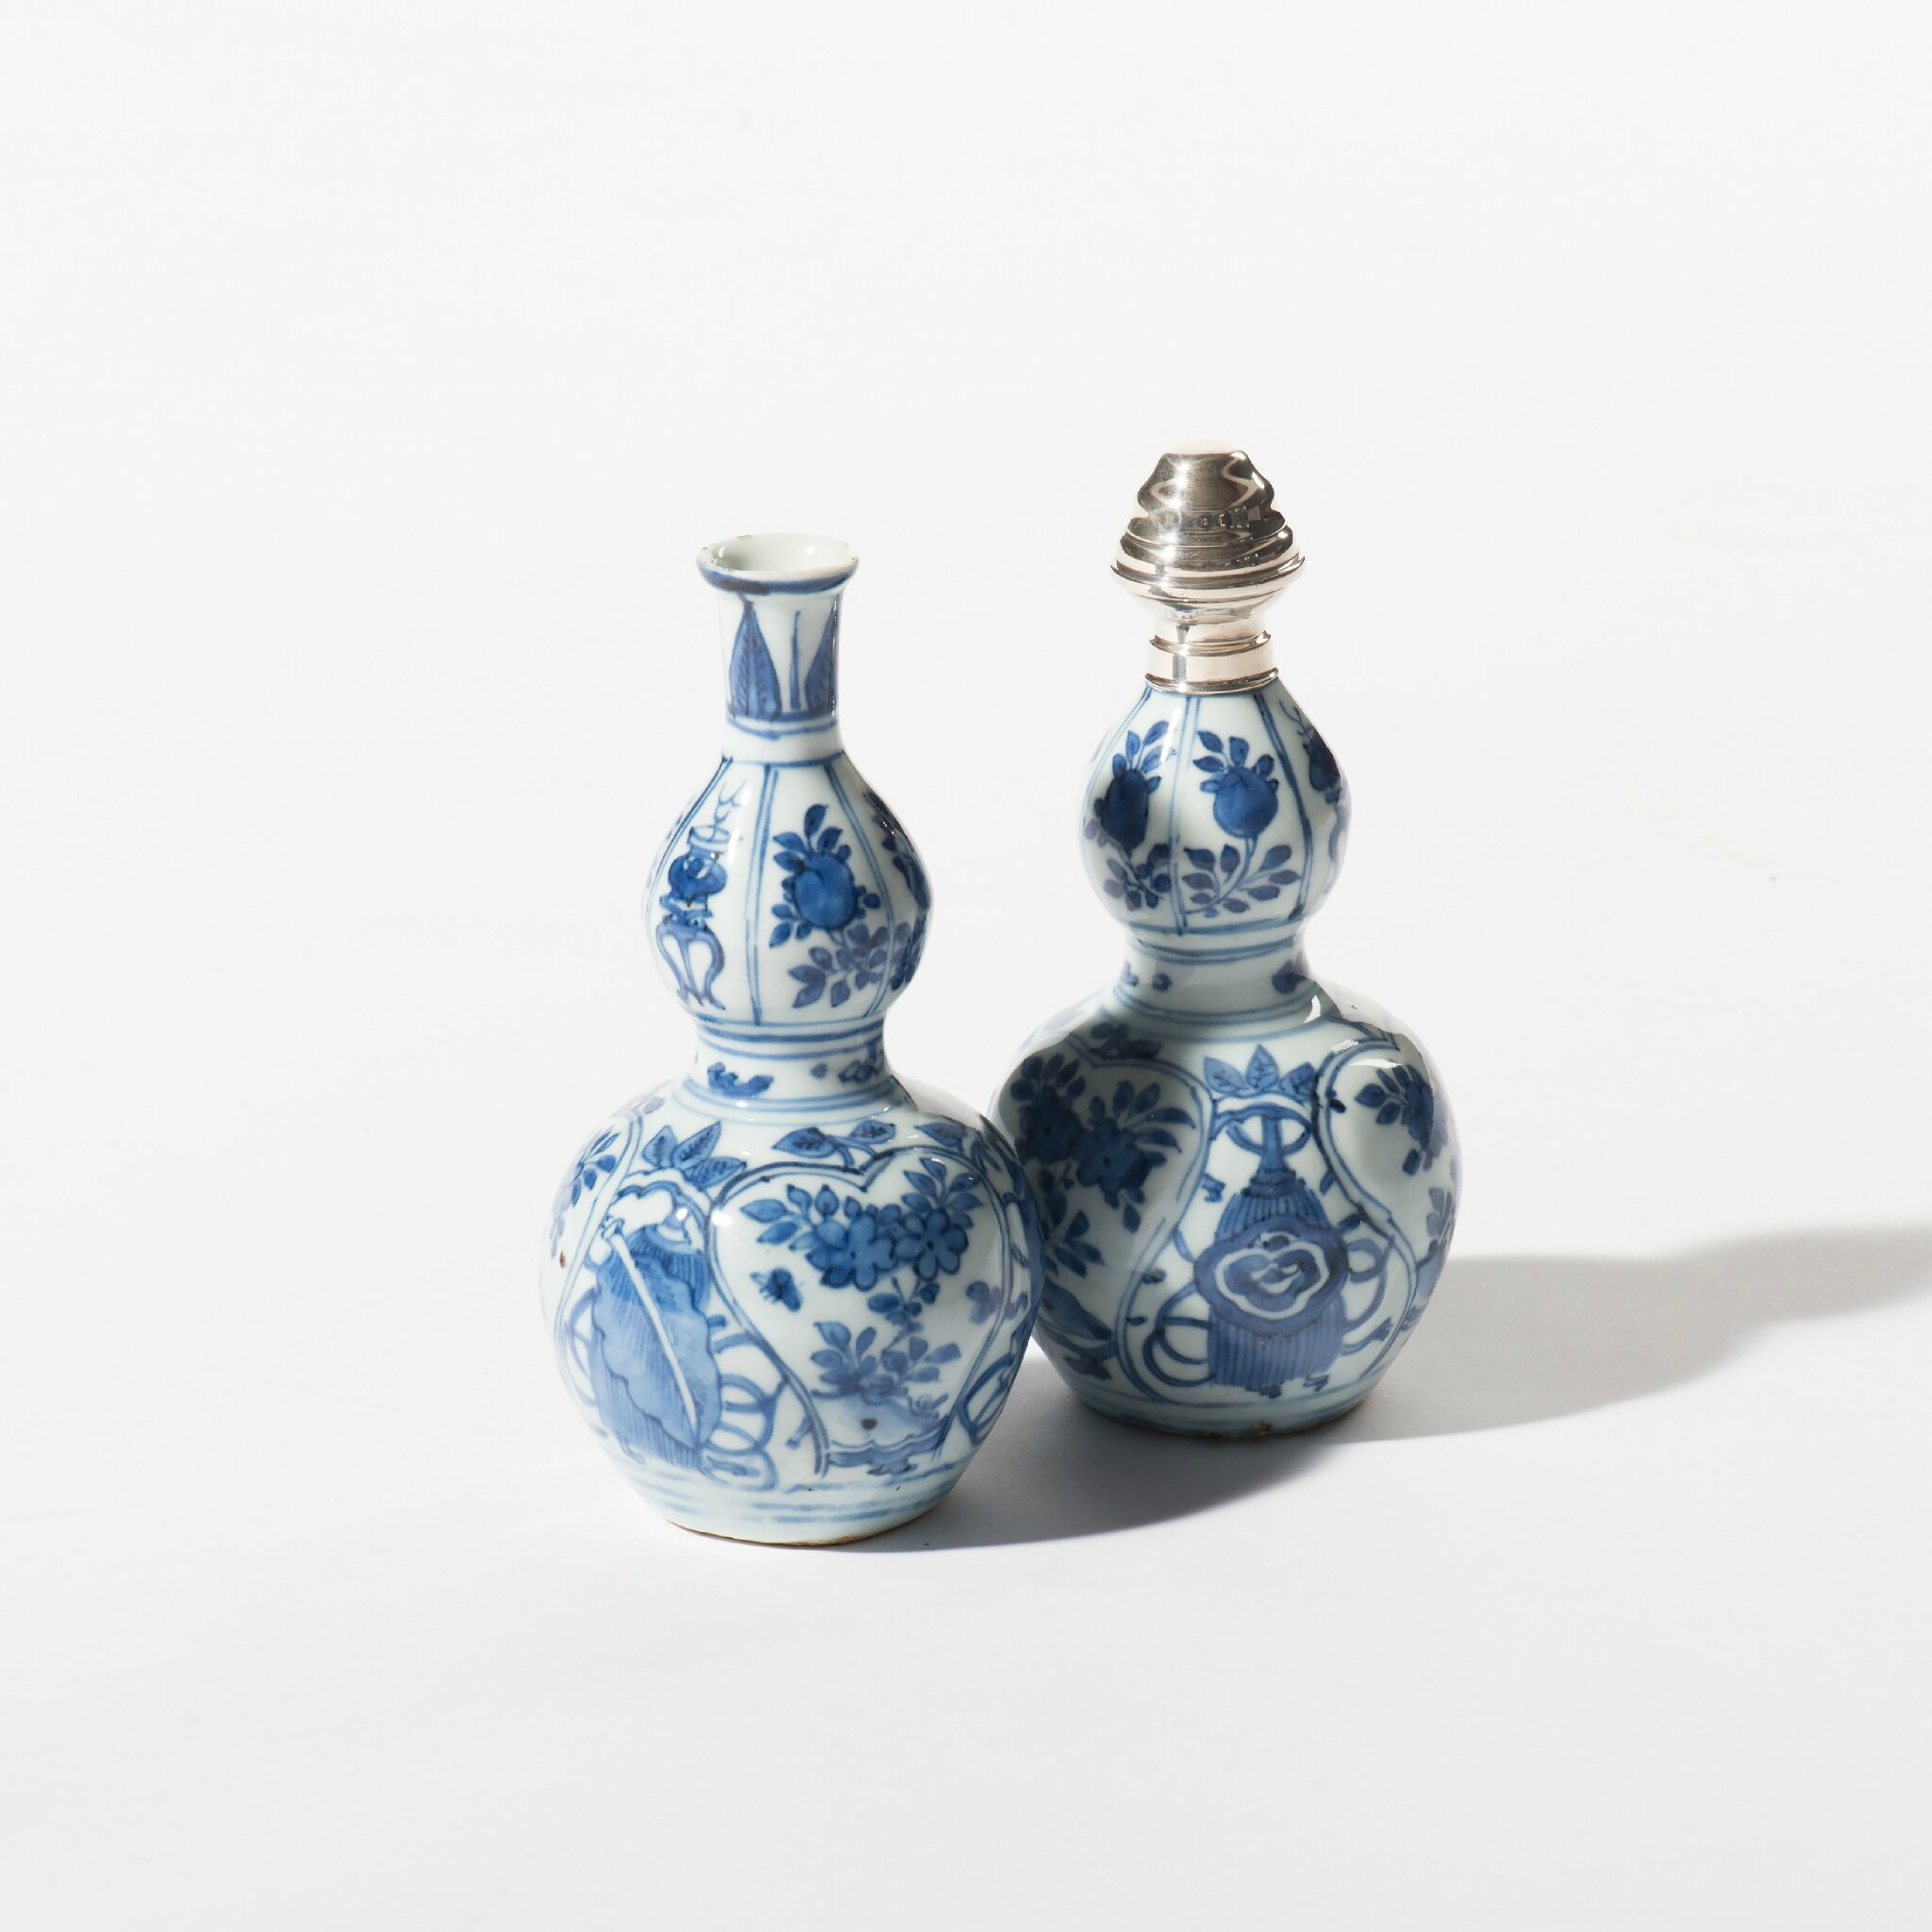 A pair of gourd-shaped blue and white vases, Wanli period (1573-1619)